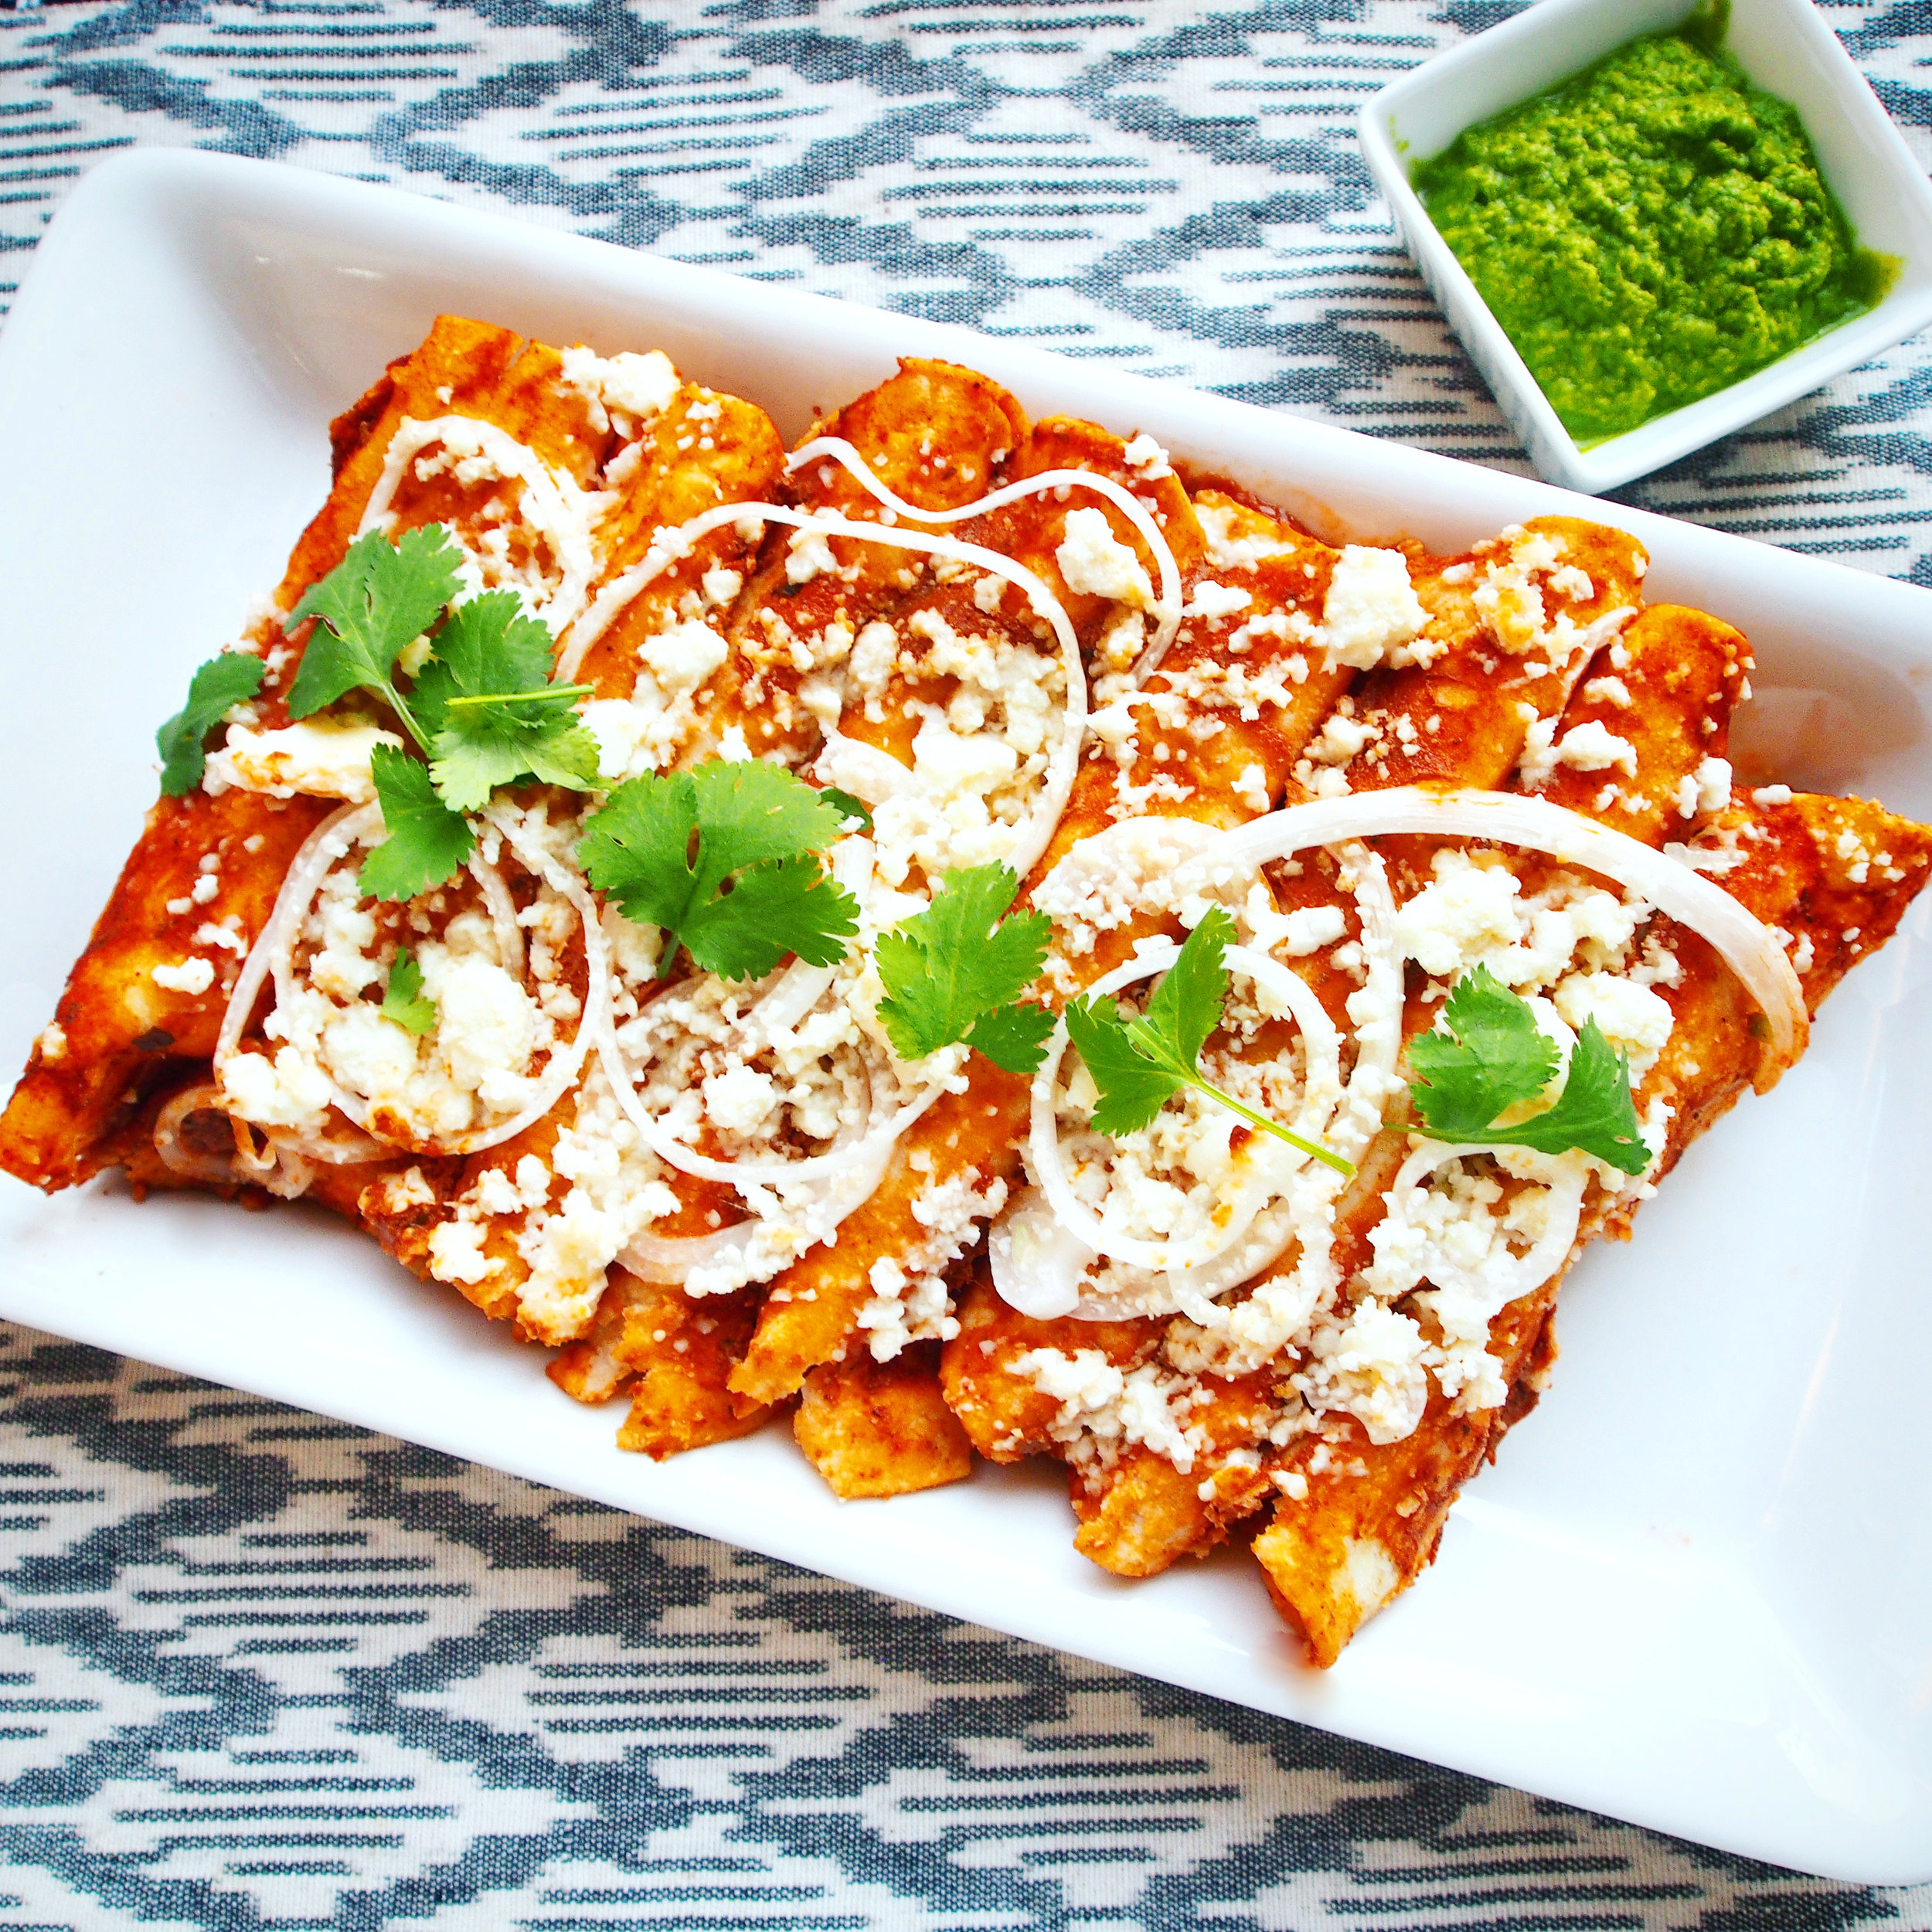 A quick and easy recipe for Chicken Tikka Masala Enchiladas with Cilantro Chutney made with Maya Kaimal's authentic Indian simmer sauces. This tasty enchilada recipe is a fusion between Mexican and Indian cuisines.